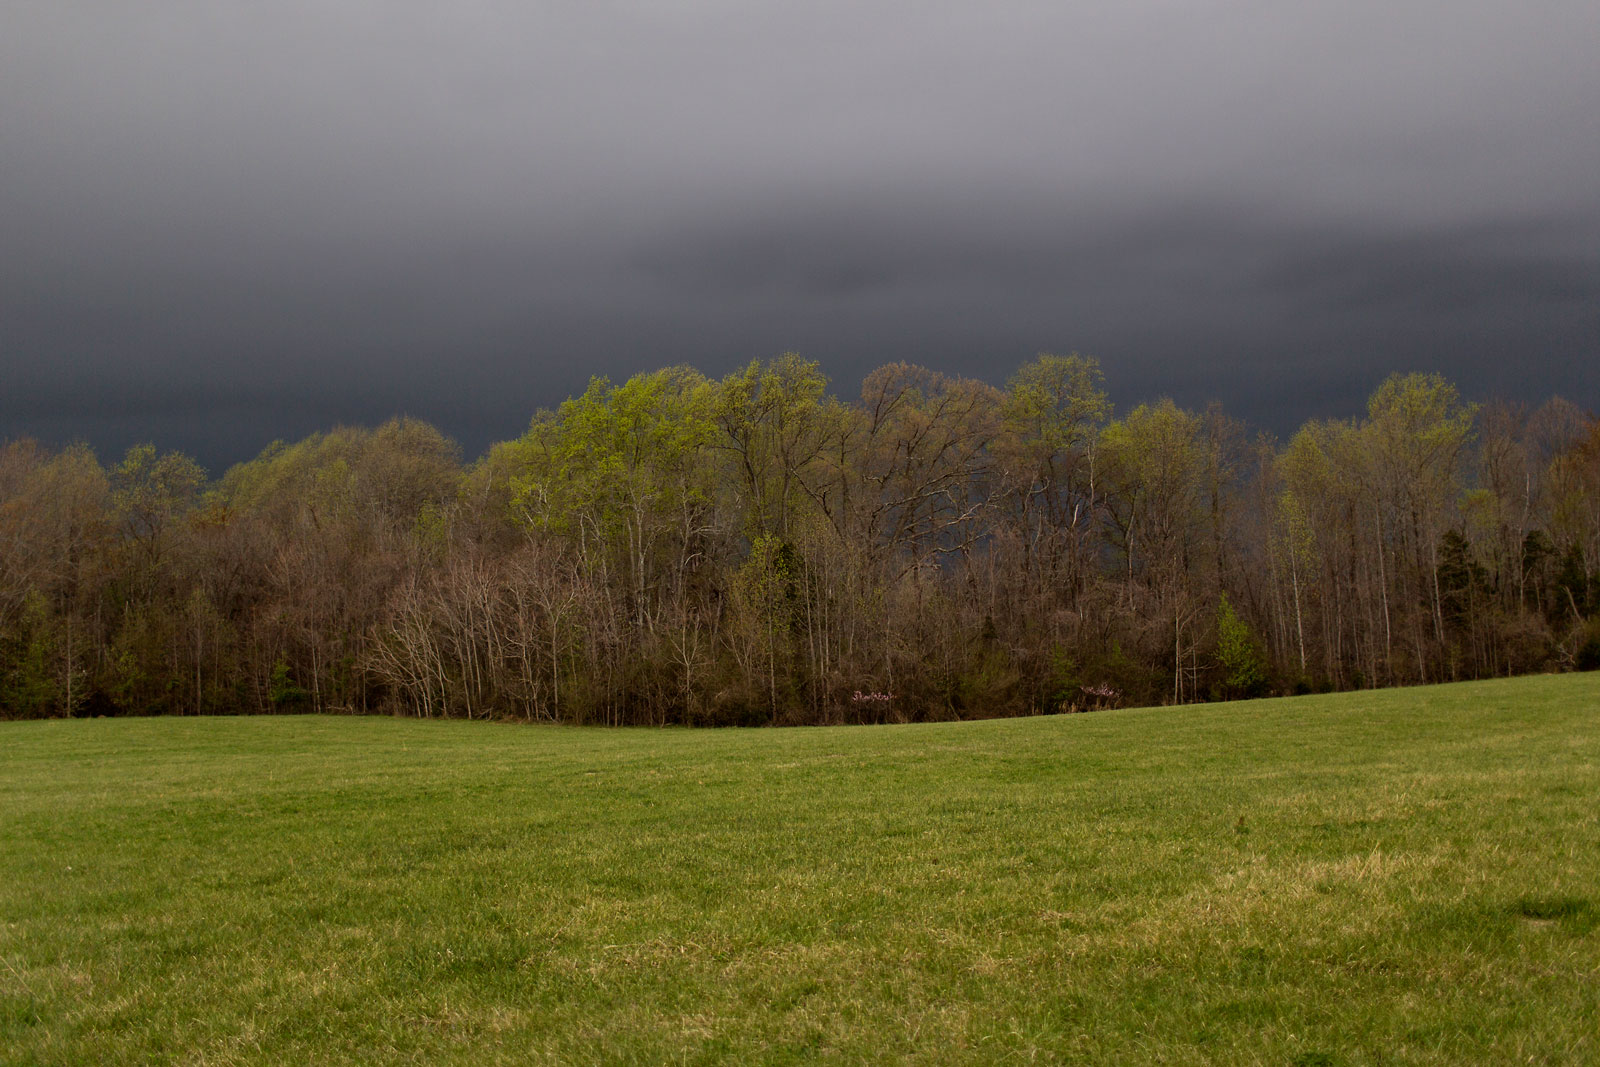 A storm gathers near the area Gen. Grant will bivouac the night of April 8, 1865.